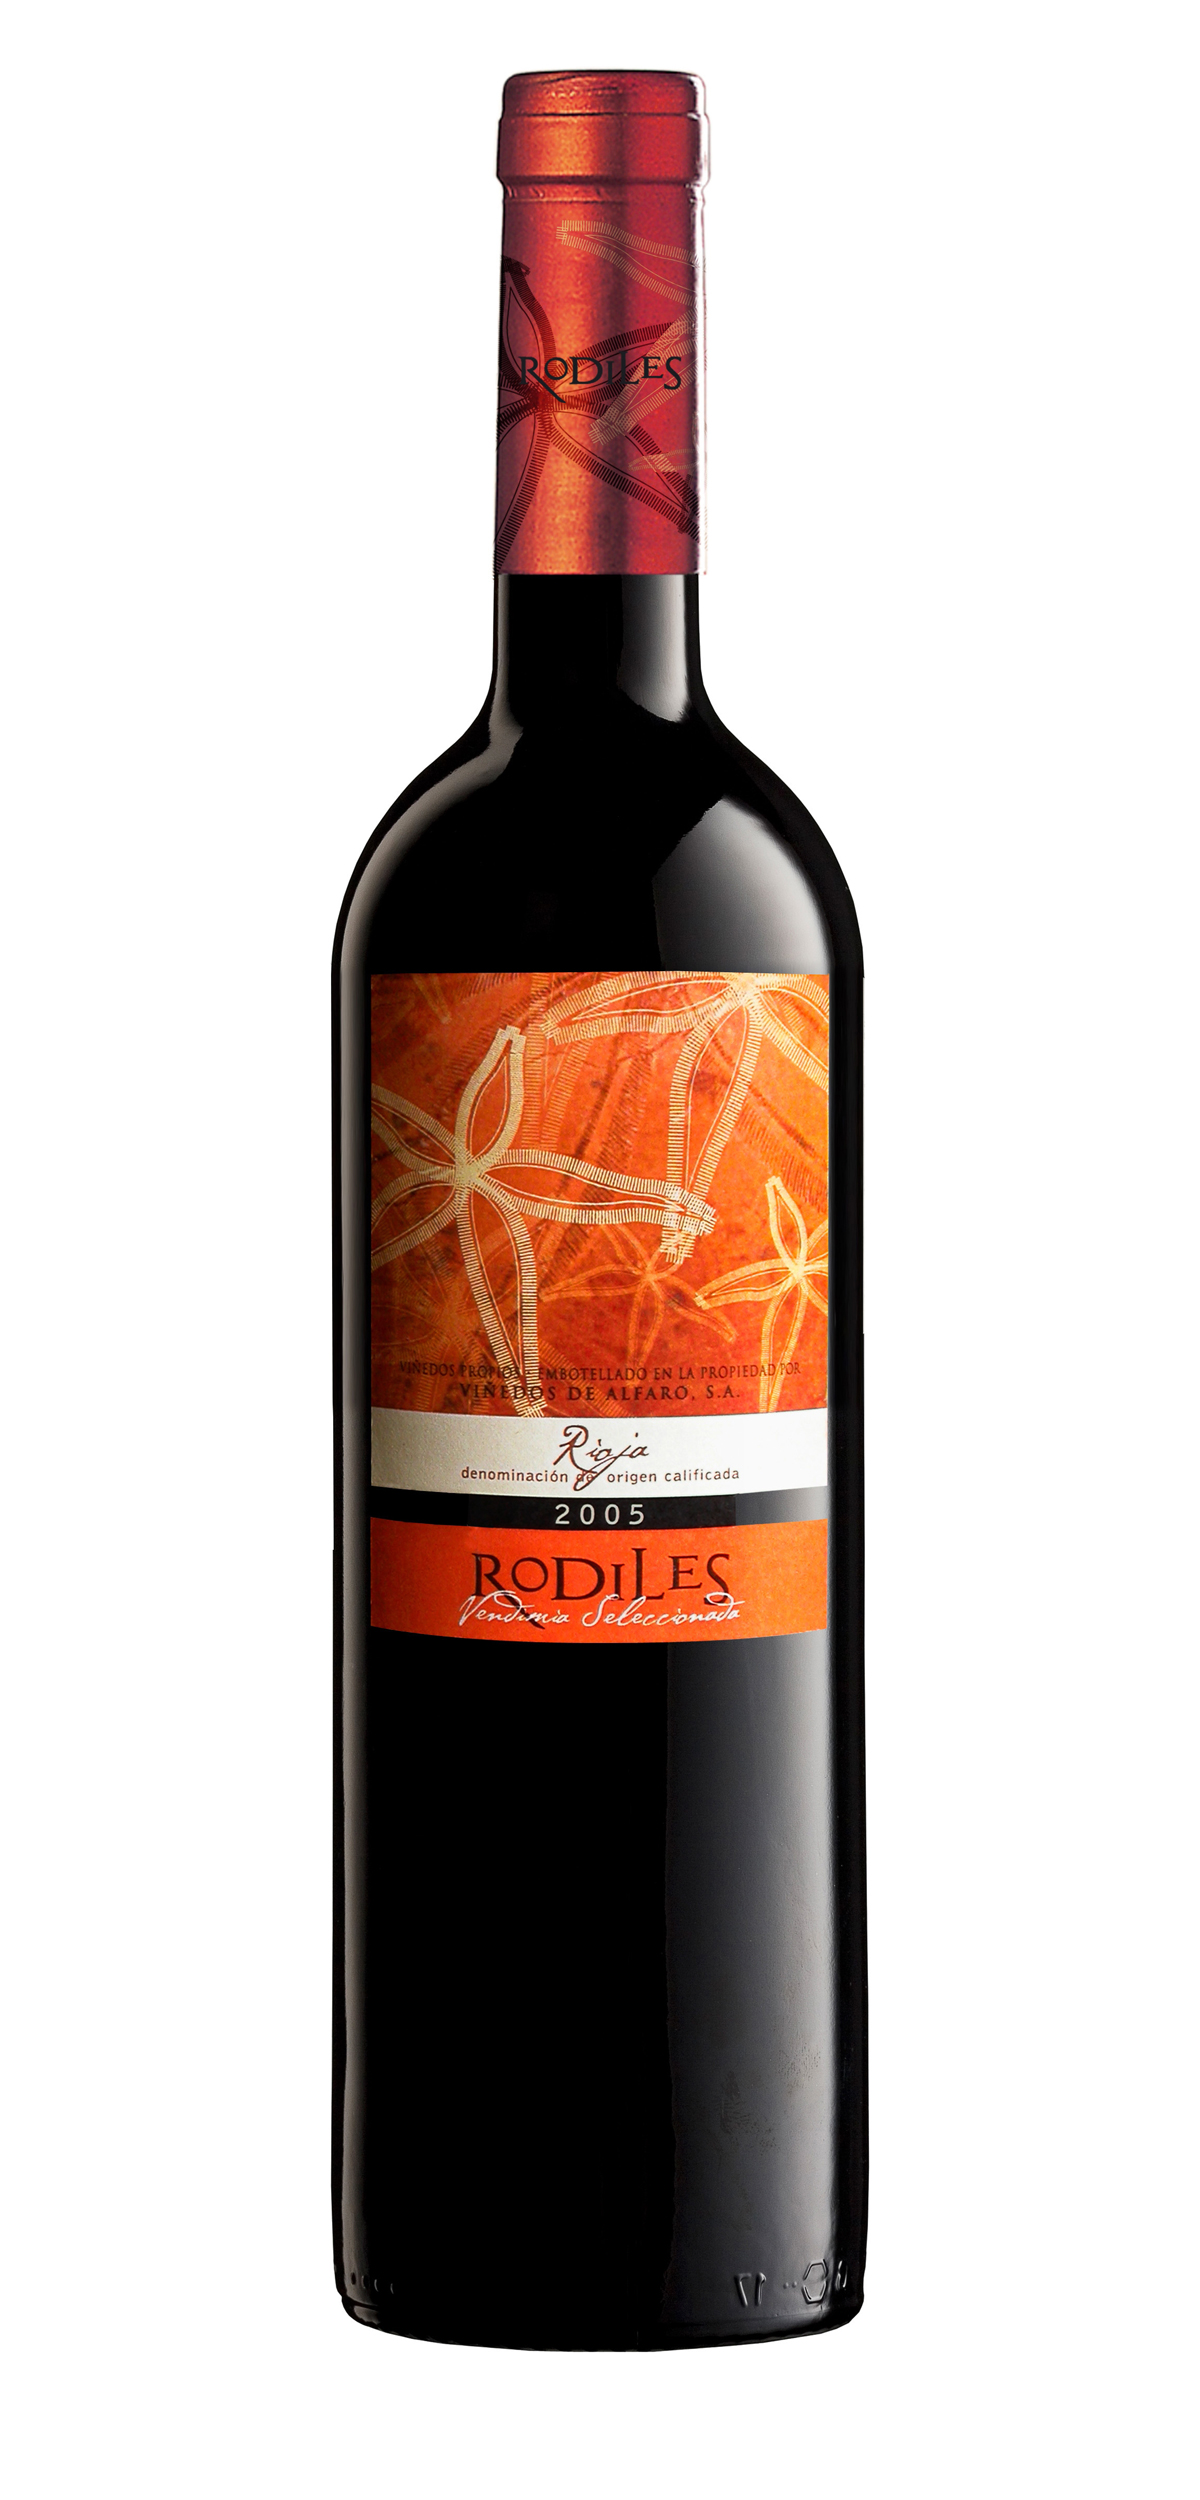 Rodiles wine bottle design